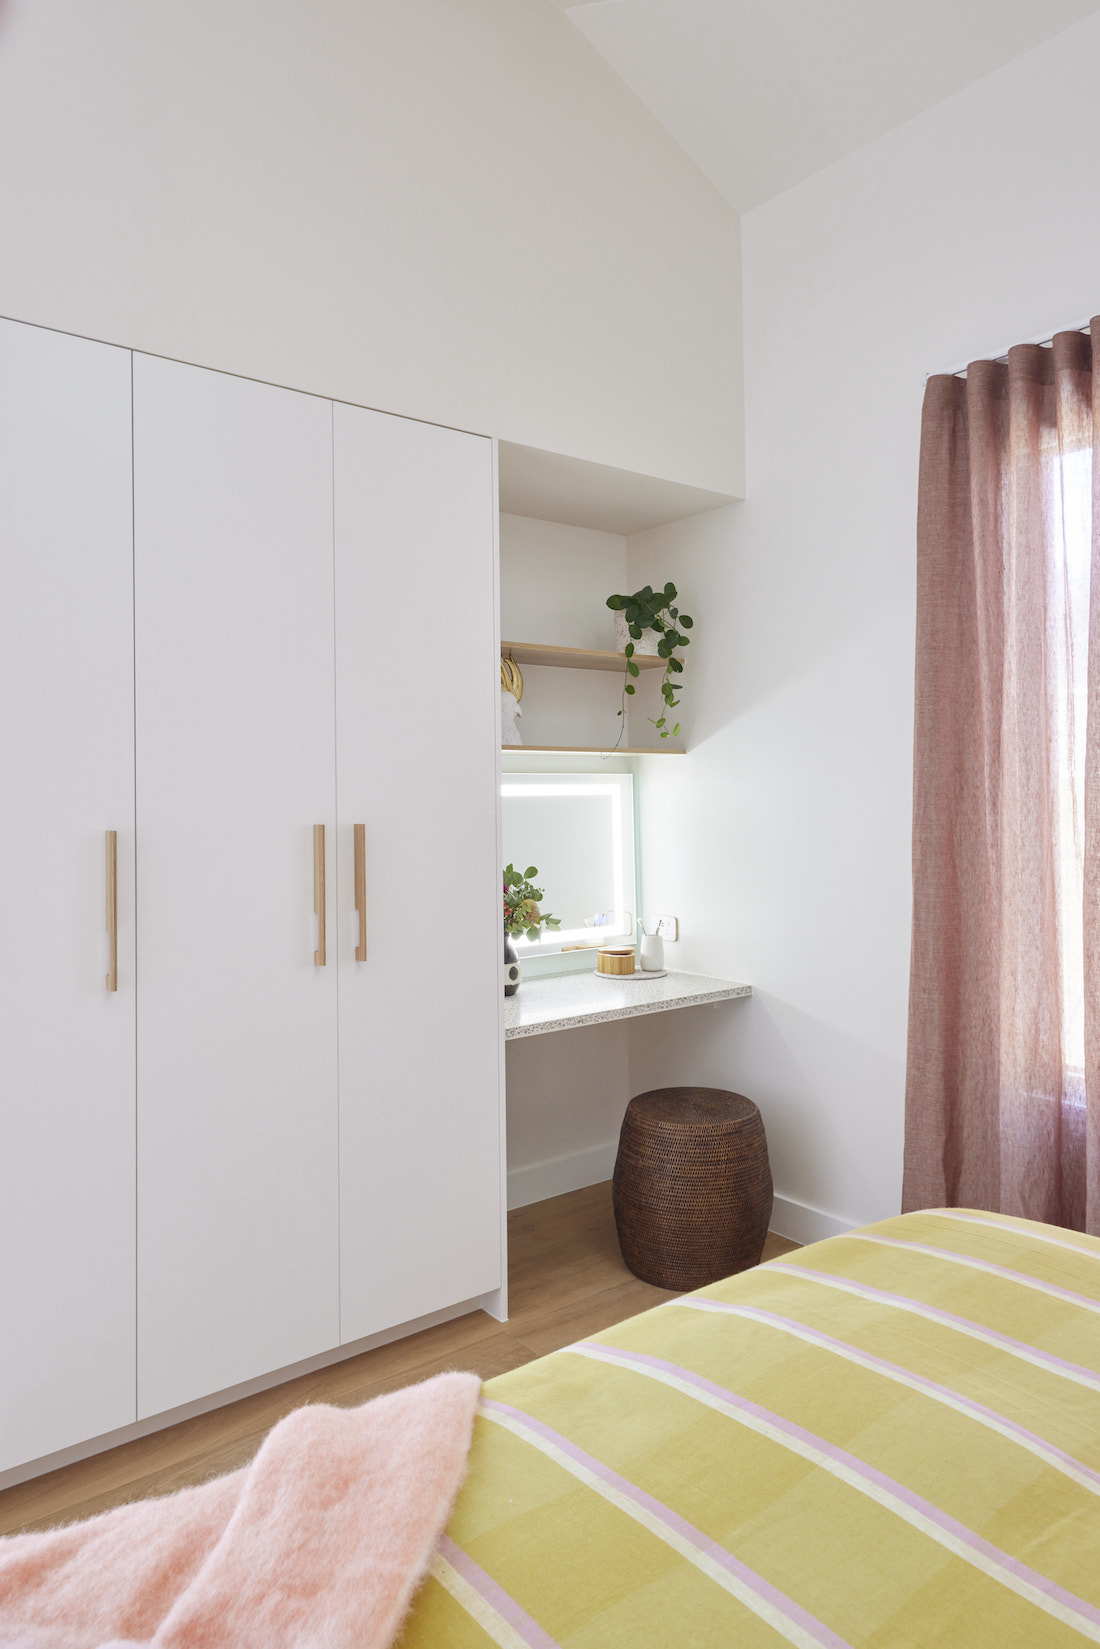 Built in wardrobes with makeup area